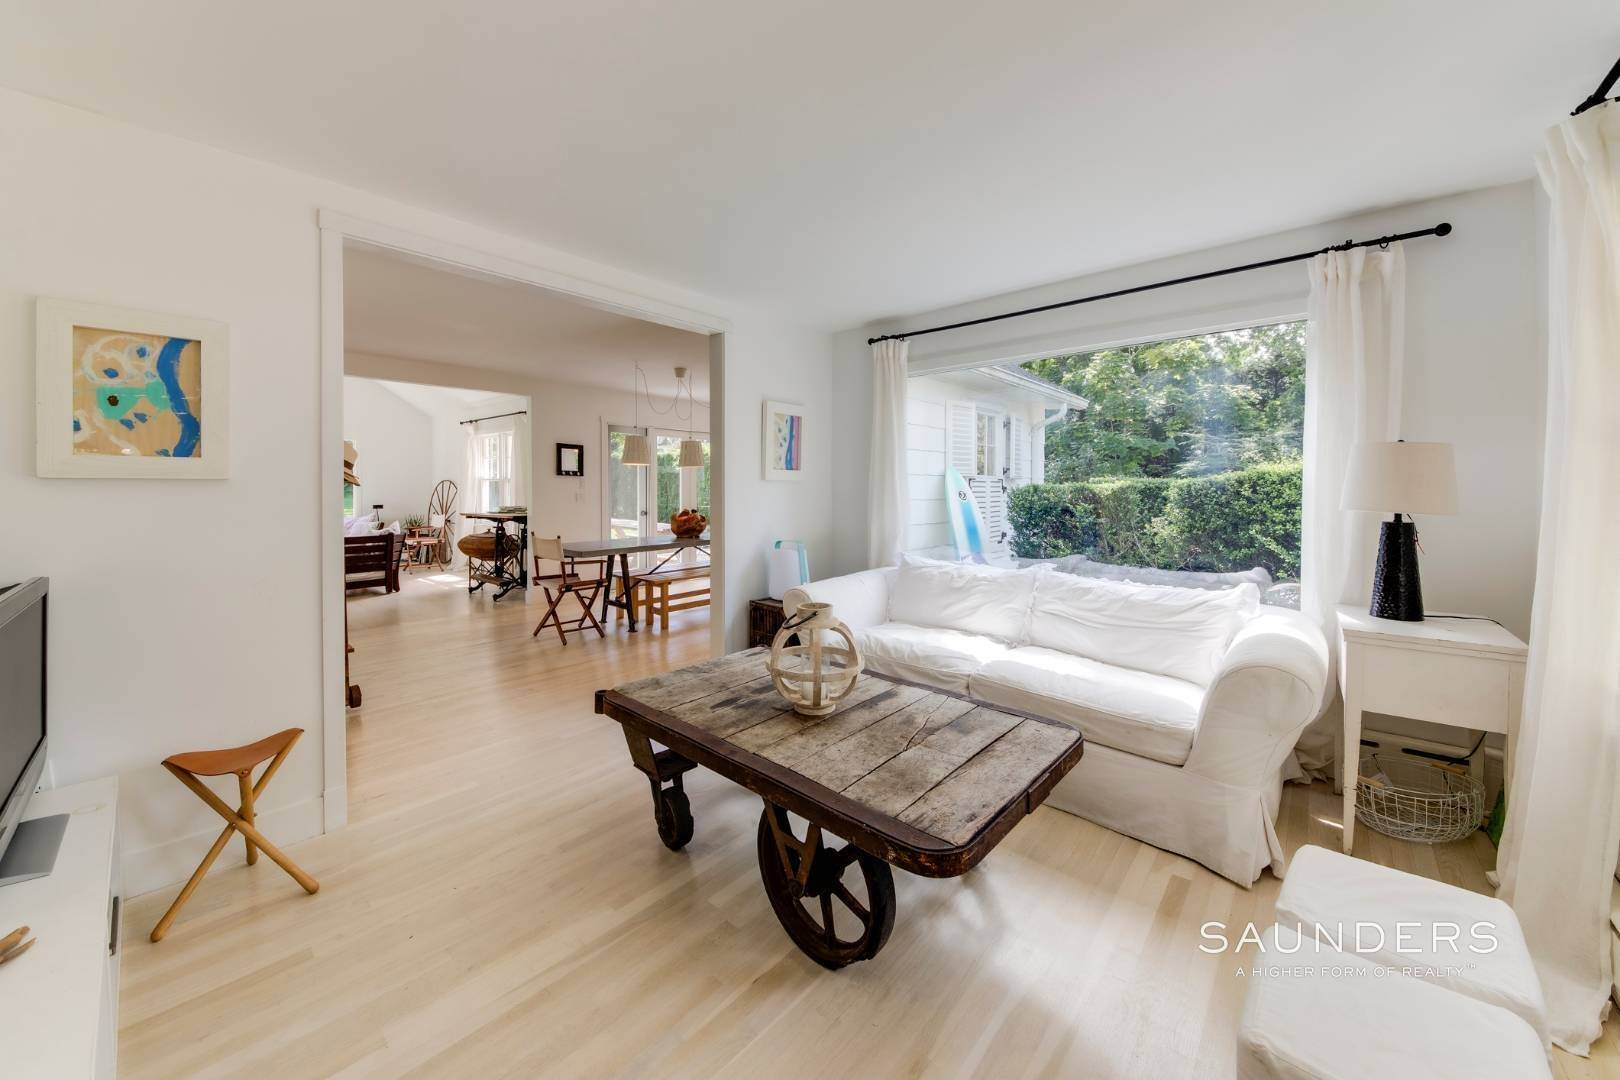 4. Single Family Homes for Sale at South Of Highway - Turnkey Charmer 136 Cove Hollow Road, East Hampton, East Hampton Town, NY 11937